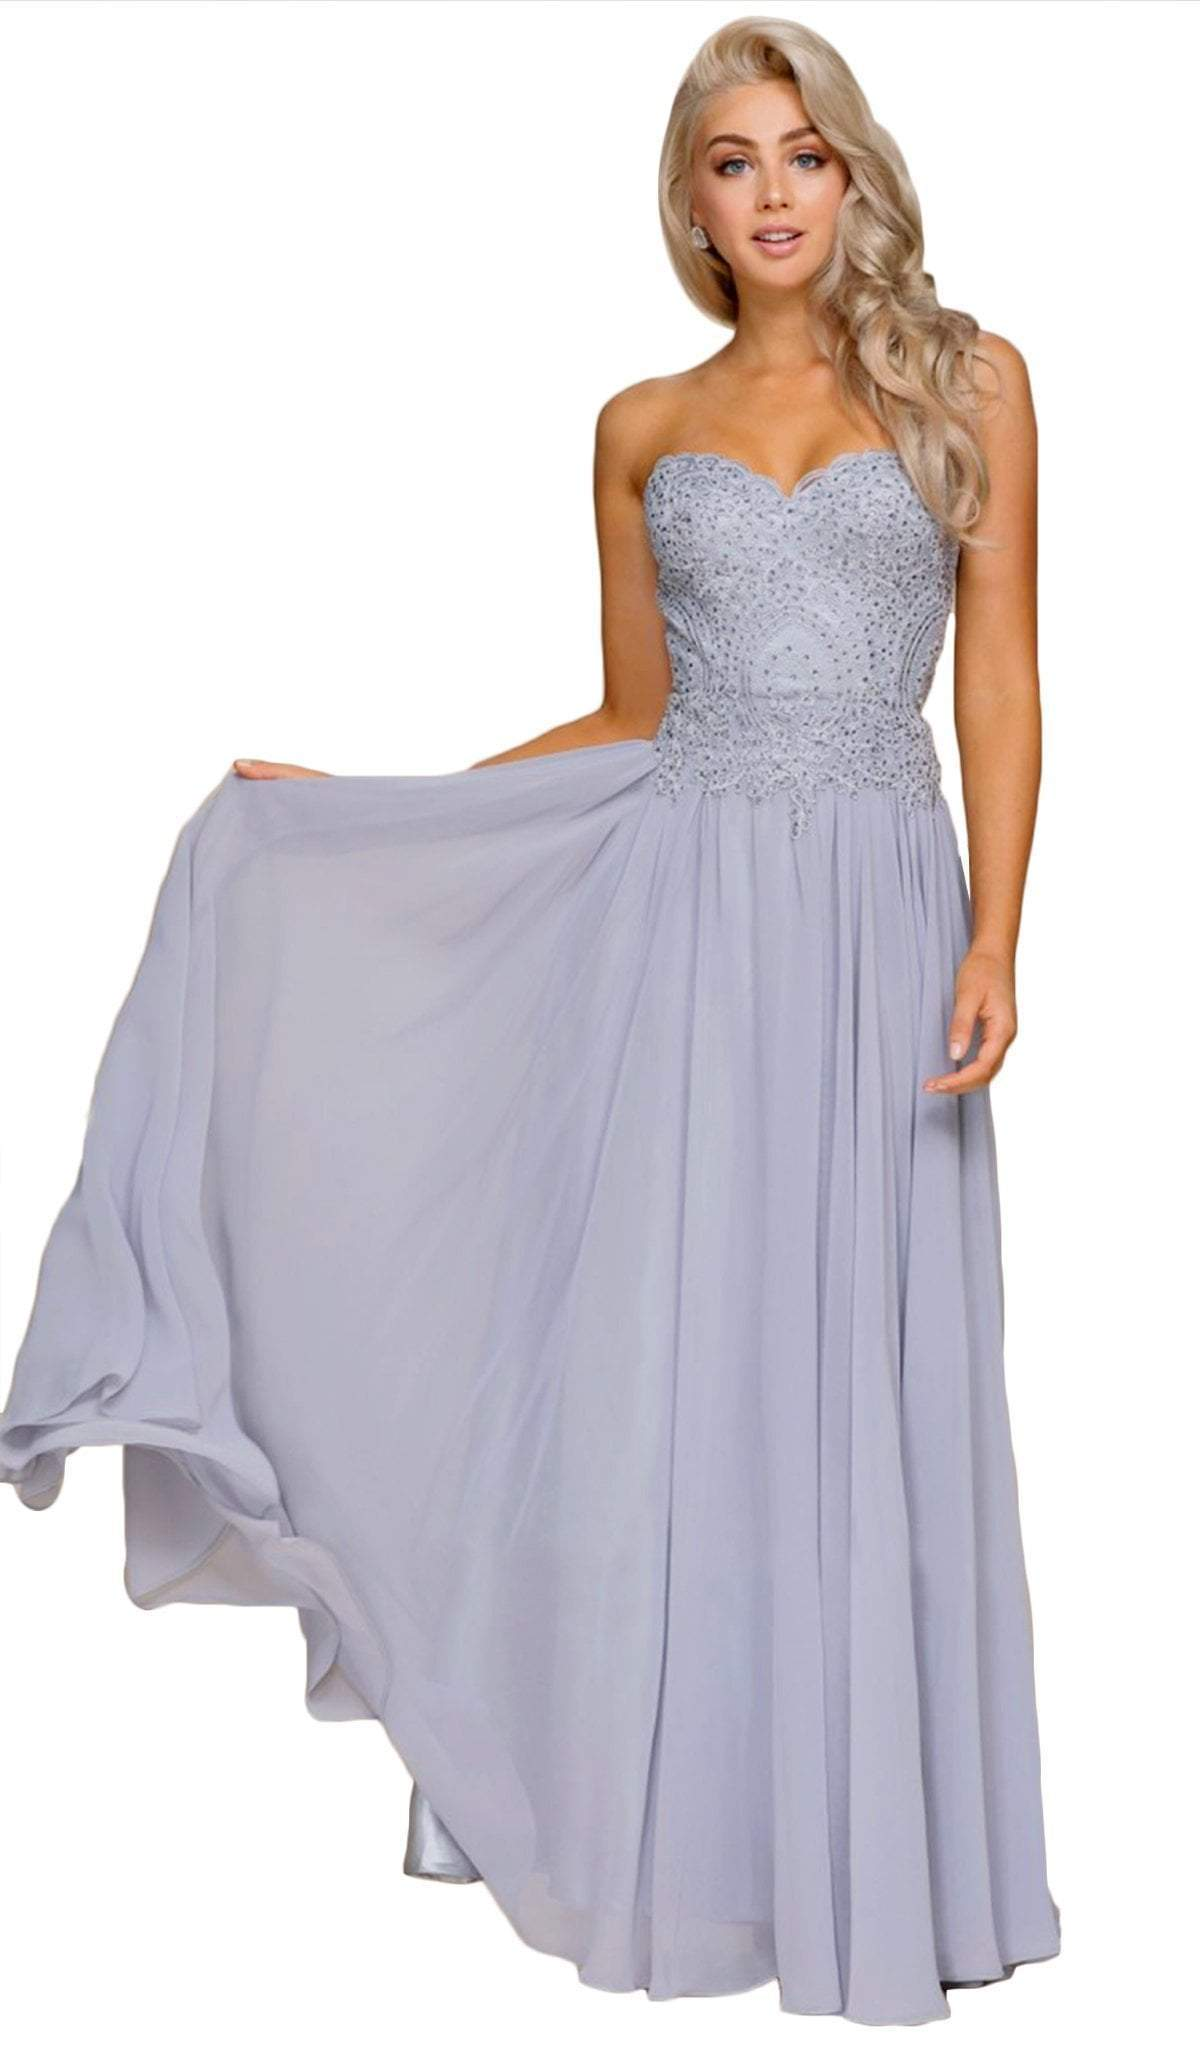 Nox Anabel - Beaded Sweetheart Chiffon A-line Dress B045SC